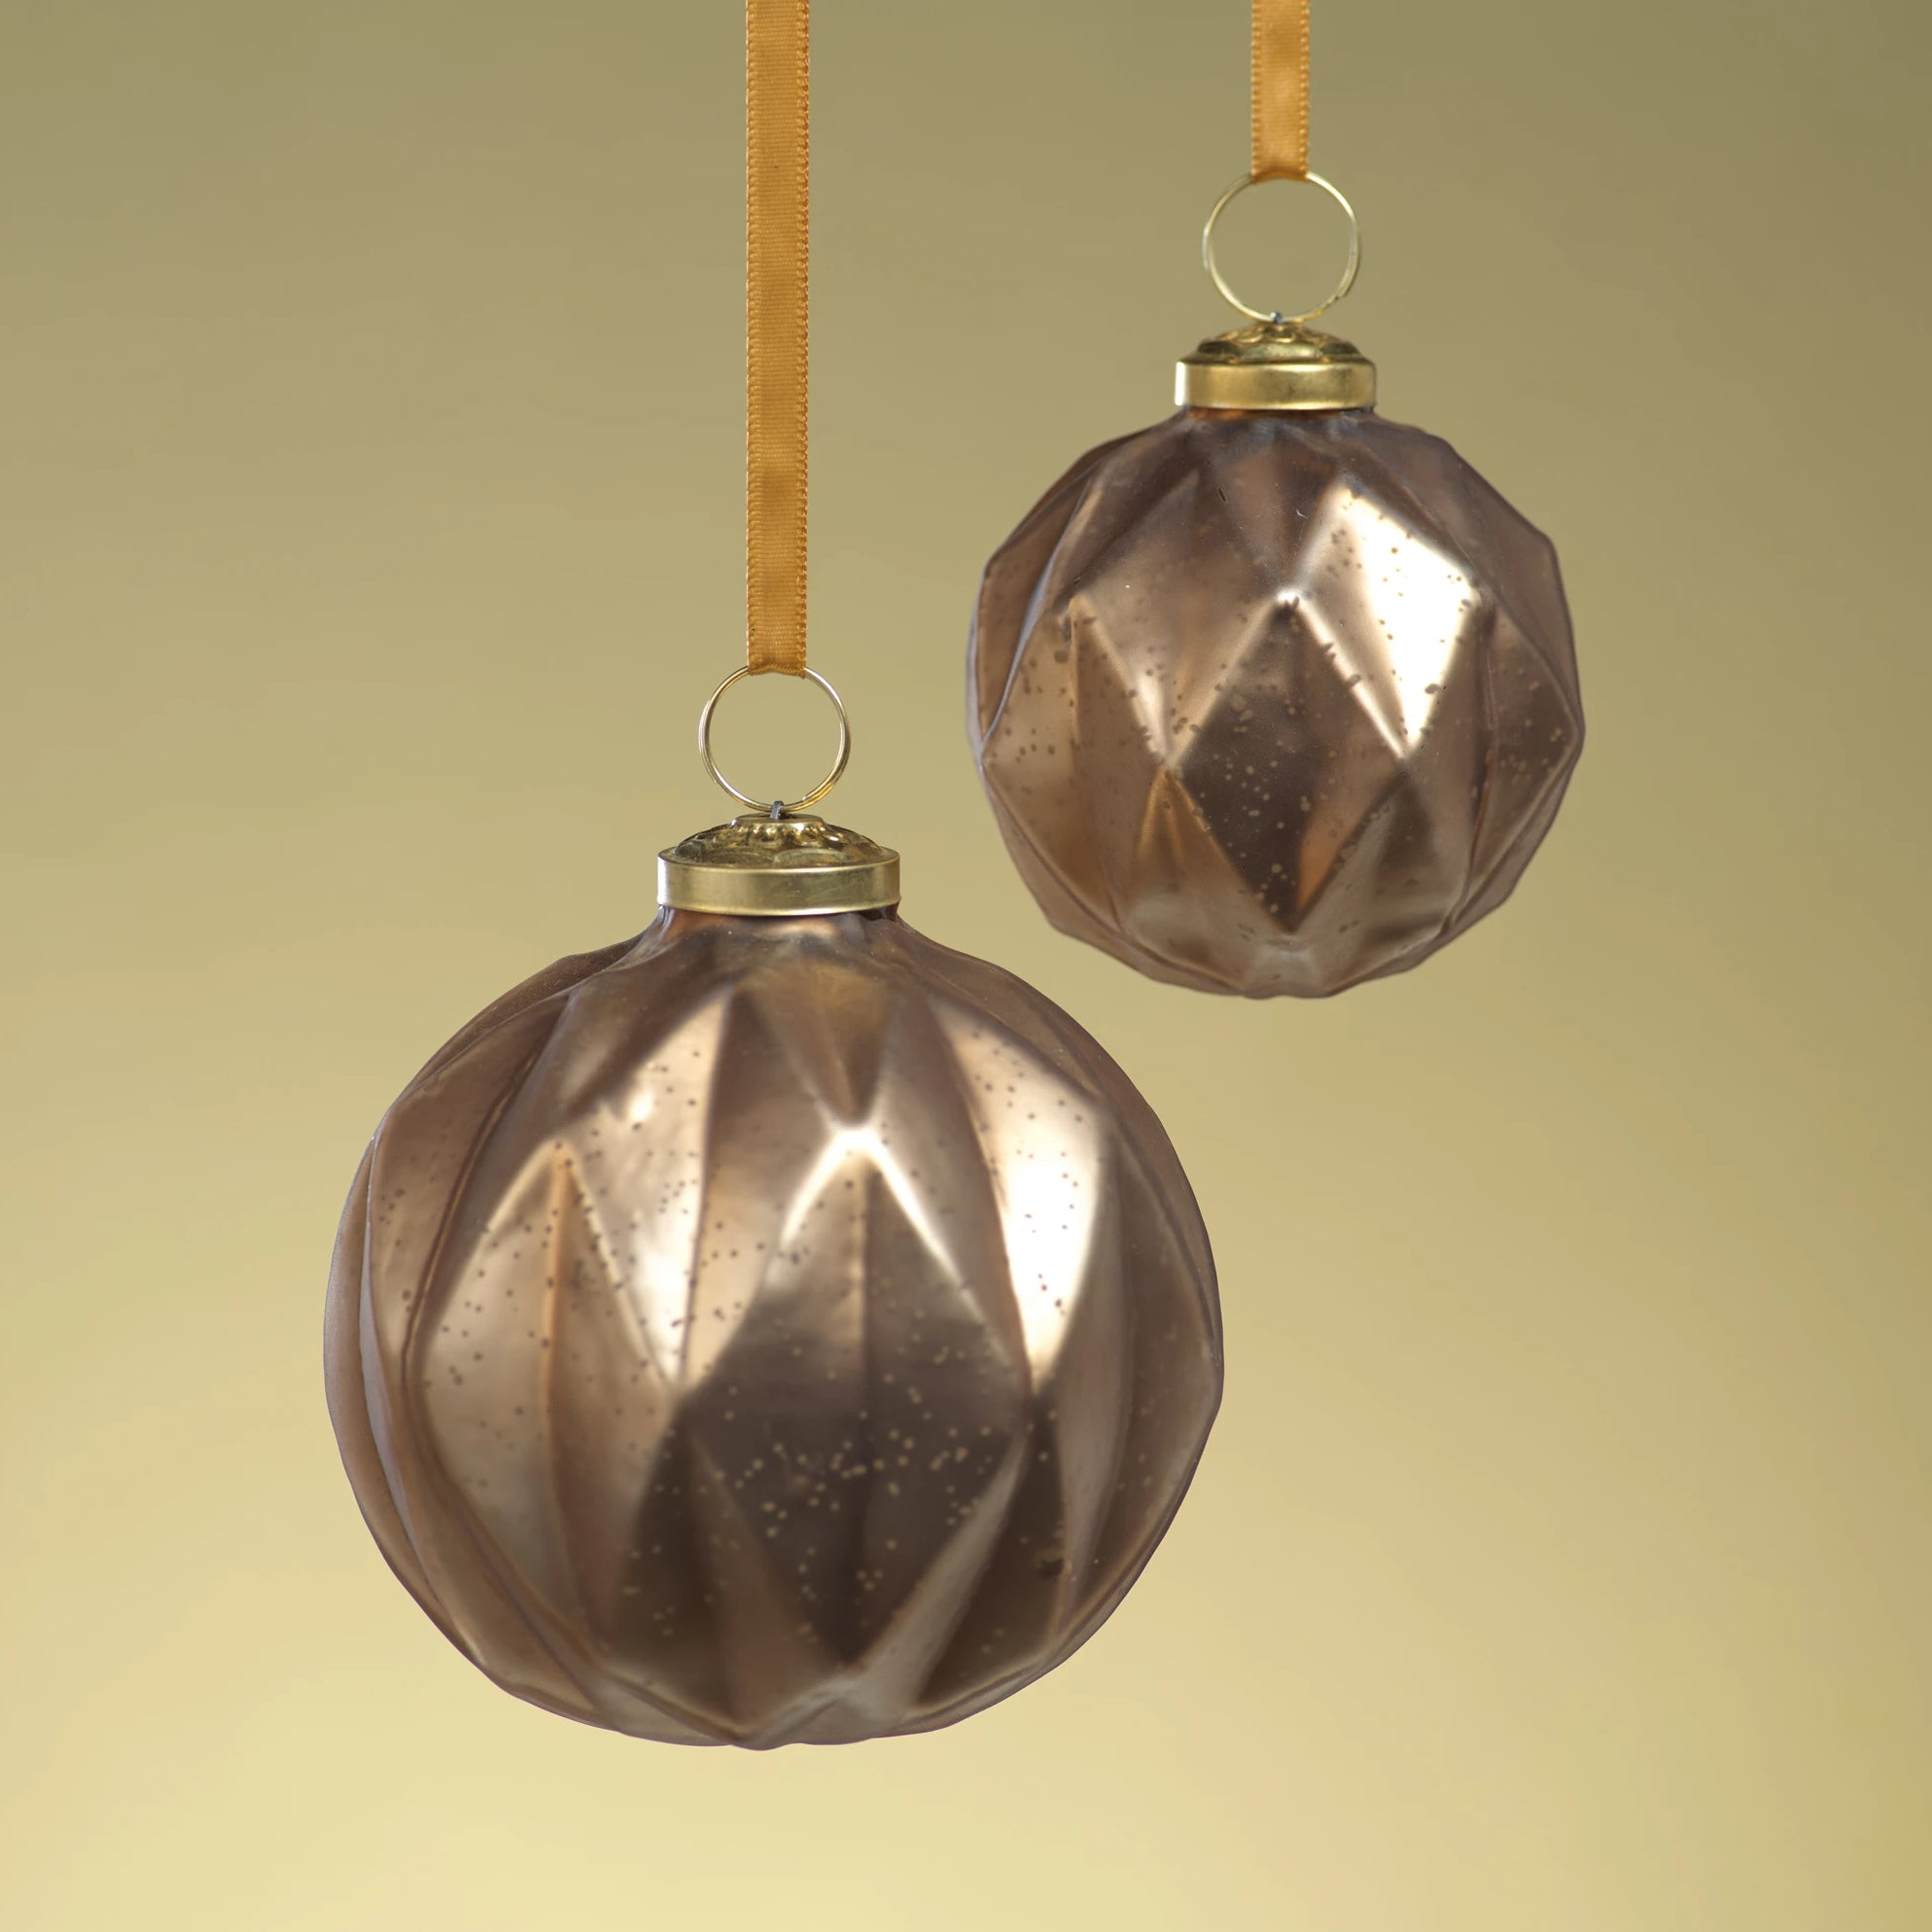 Faceted Glass Ornaments - Gold - CARLYLE AVENUE